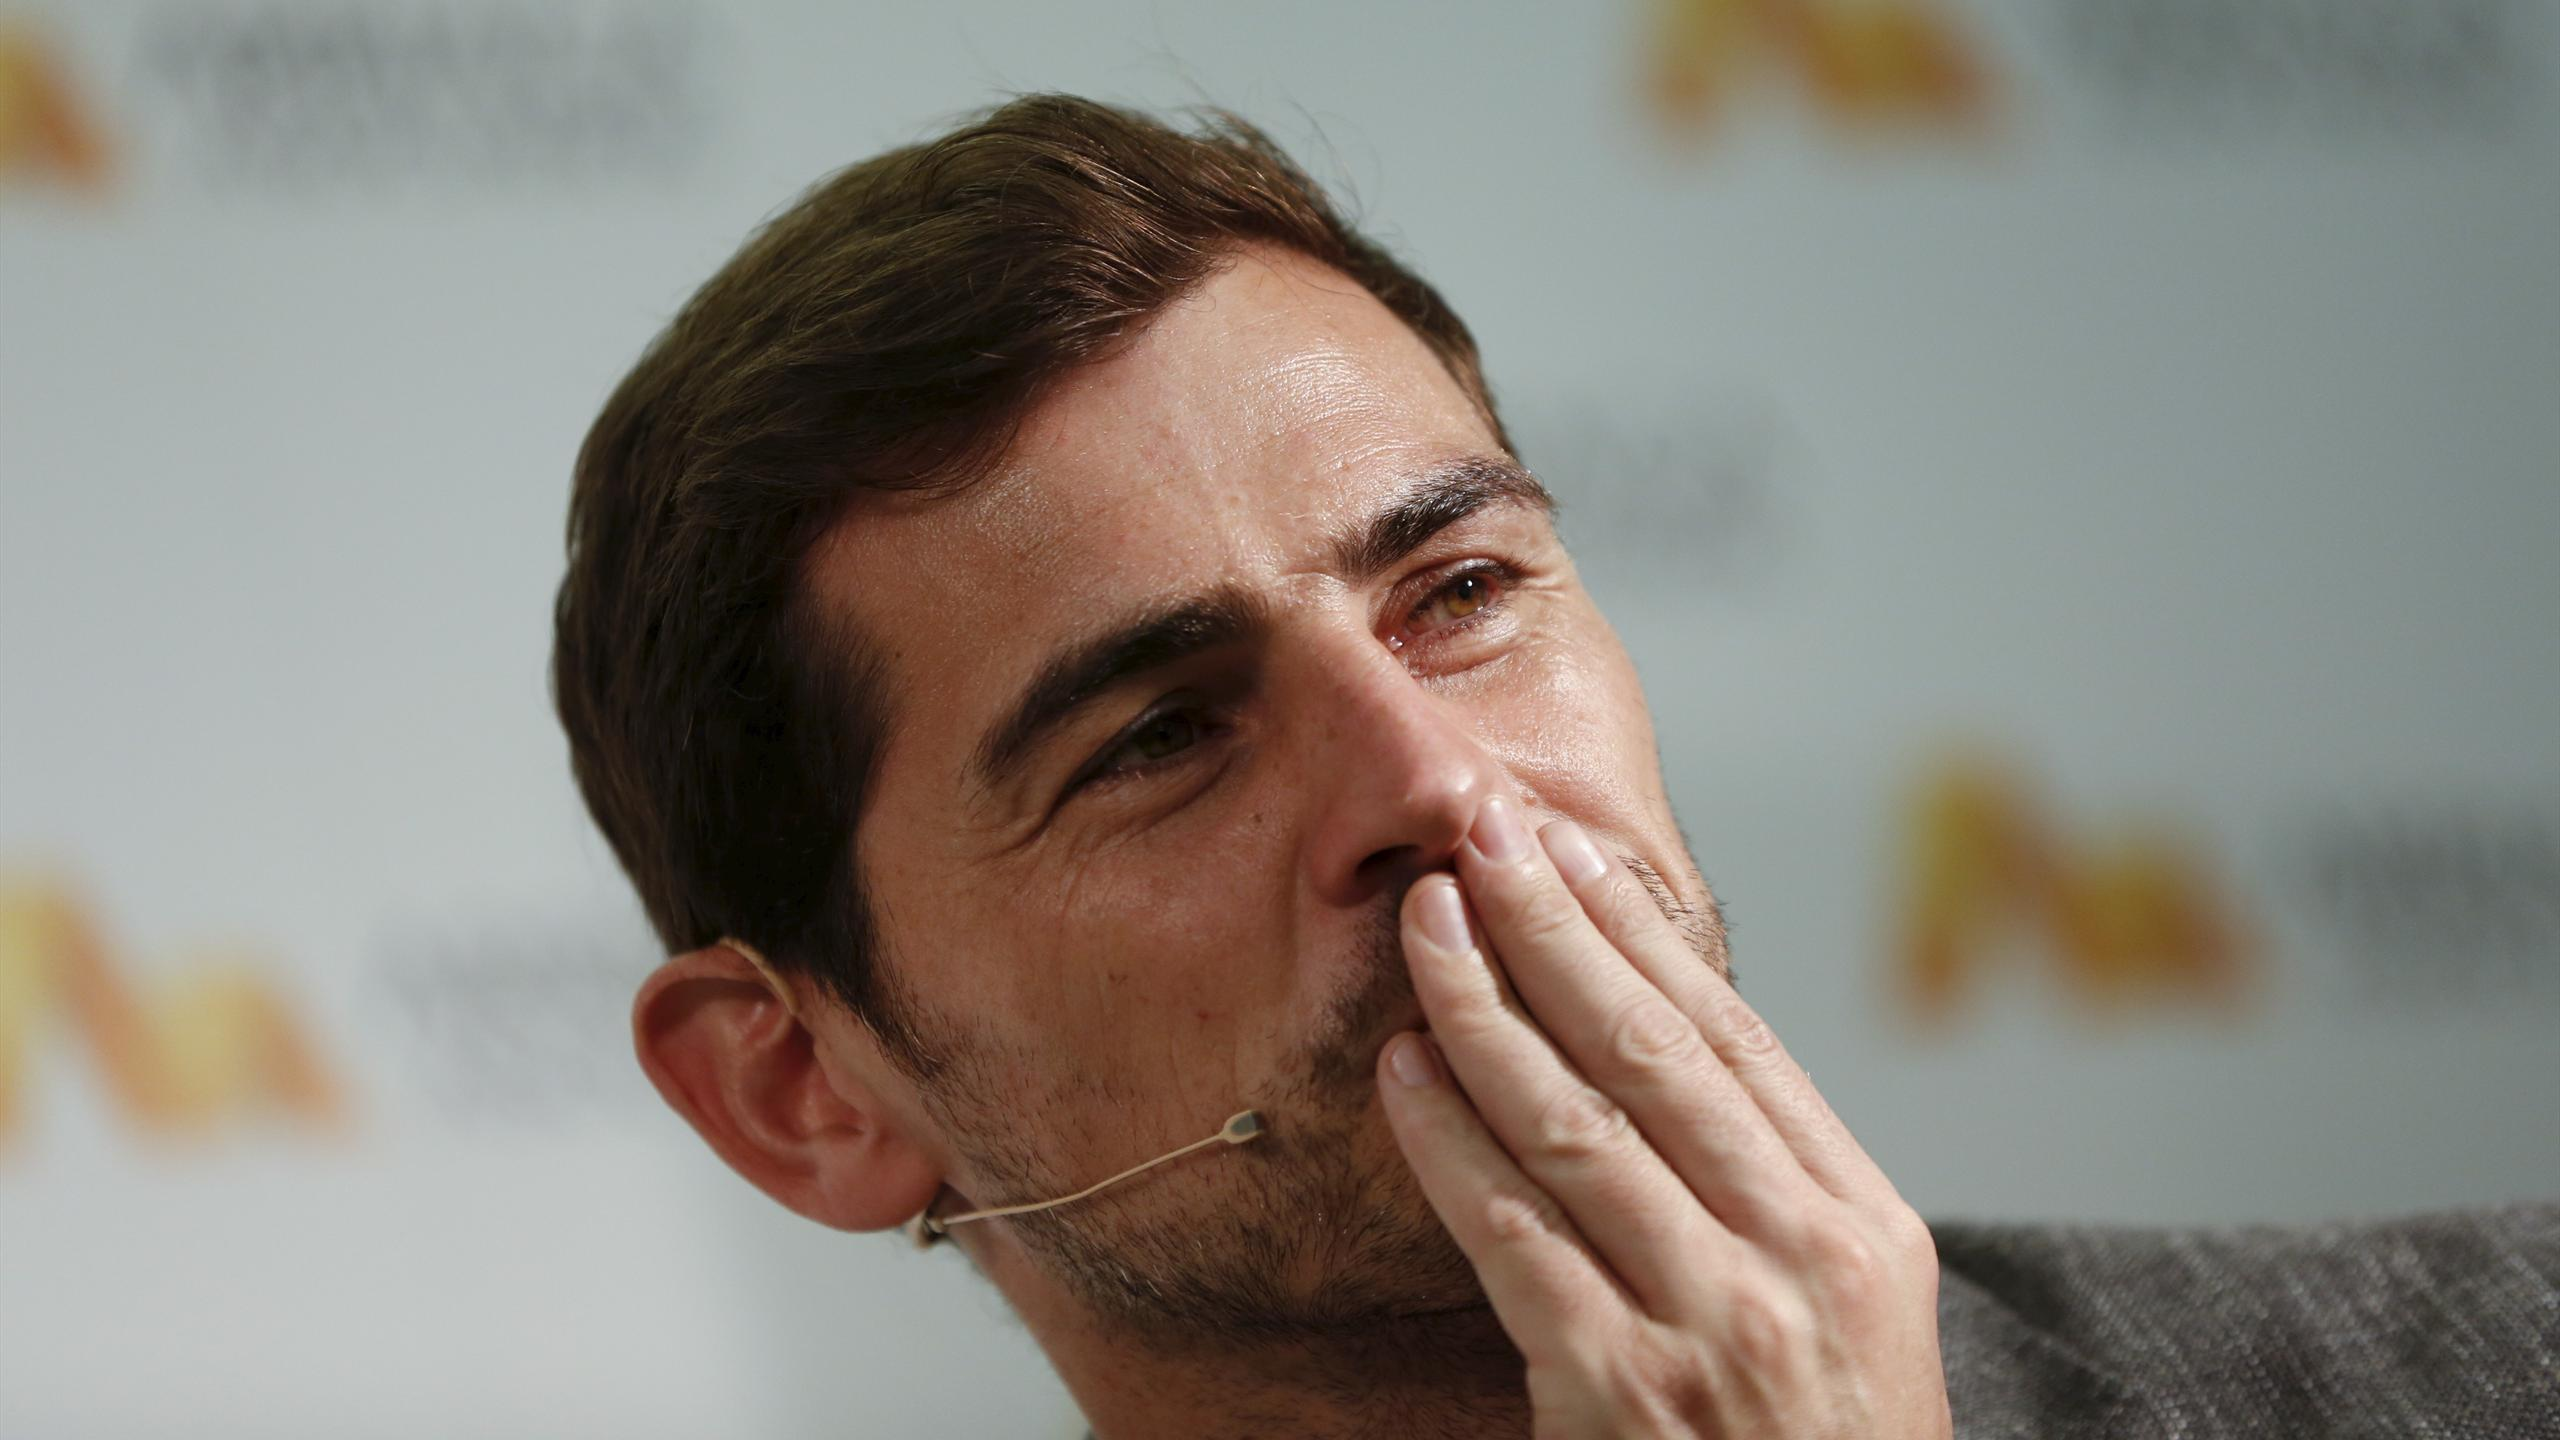 Spain's goalkeeper Iker Casillas gestures during a news conference in Madrid, Spain